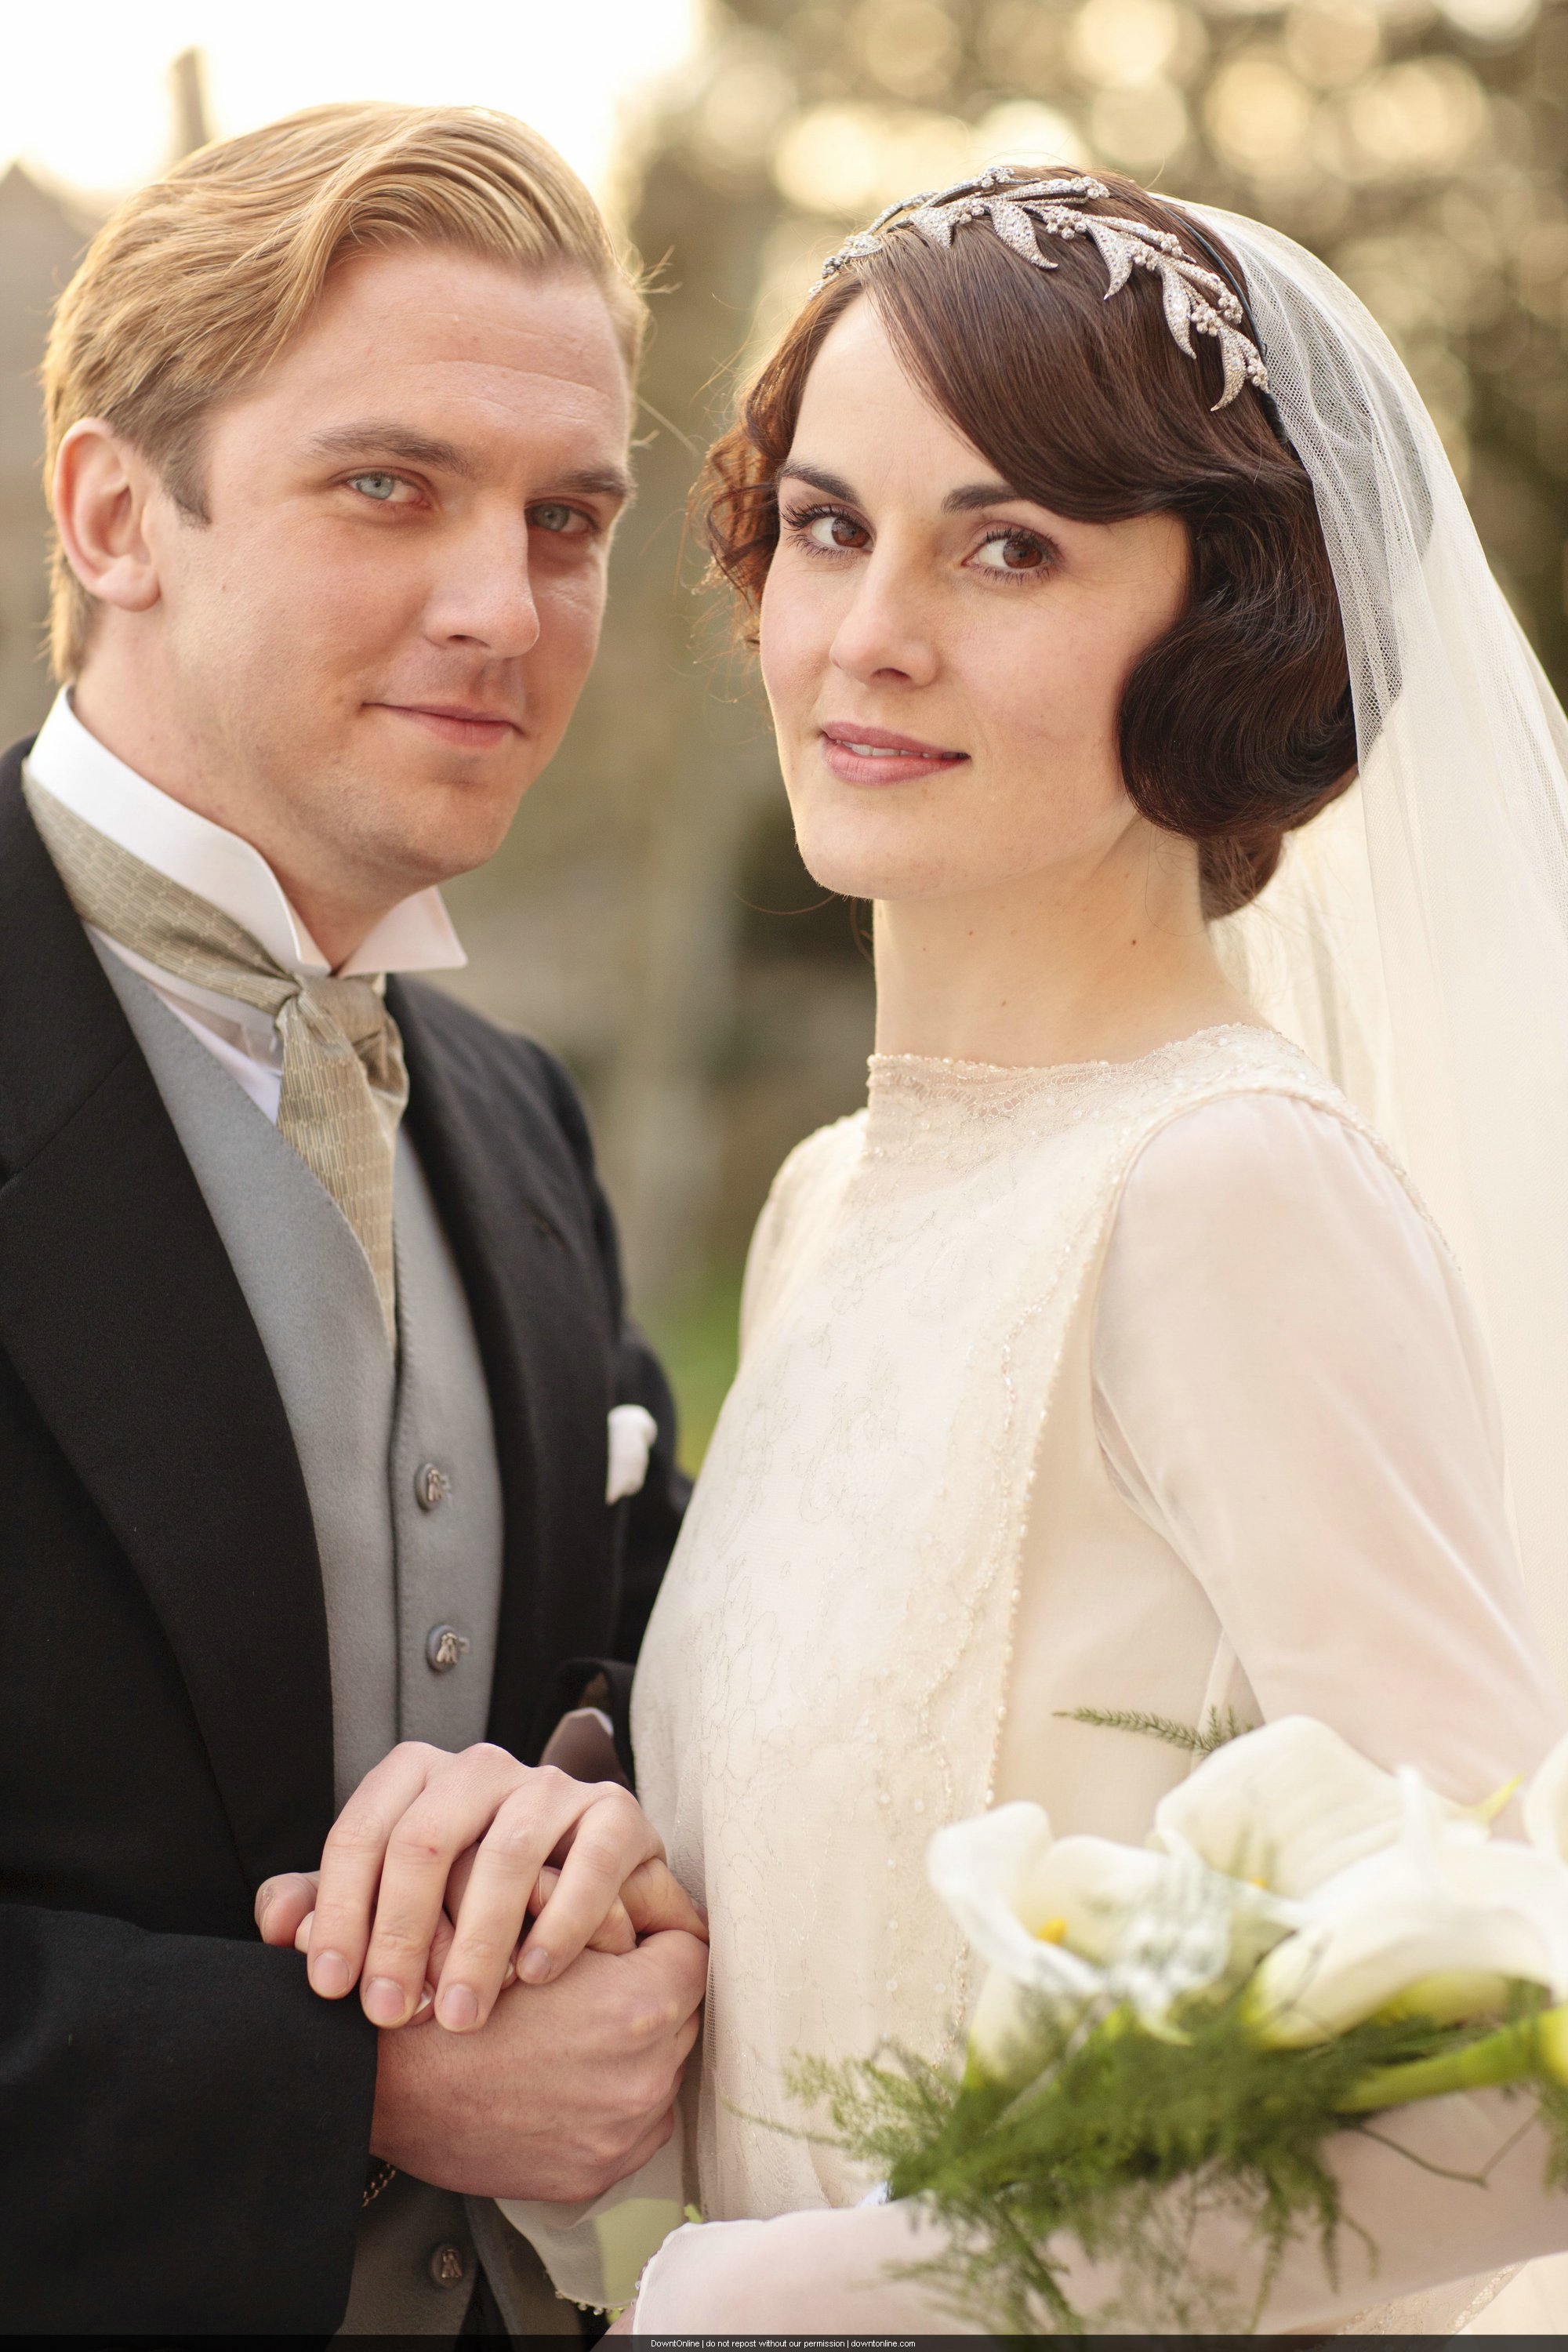 downton abbey images mary and matthew crawley wedding hd